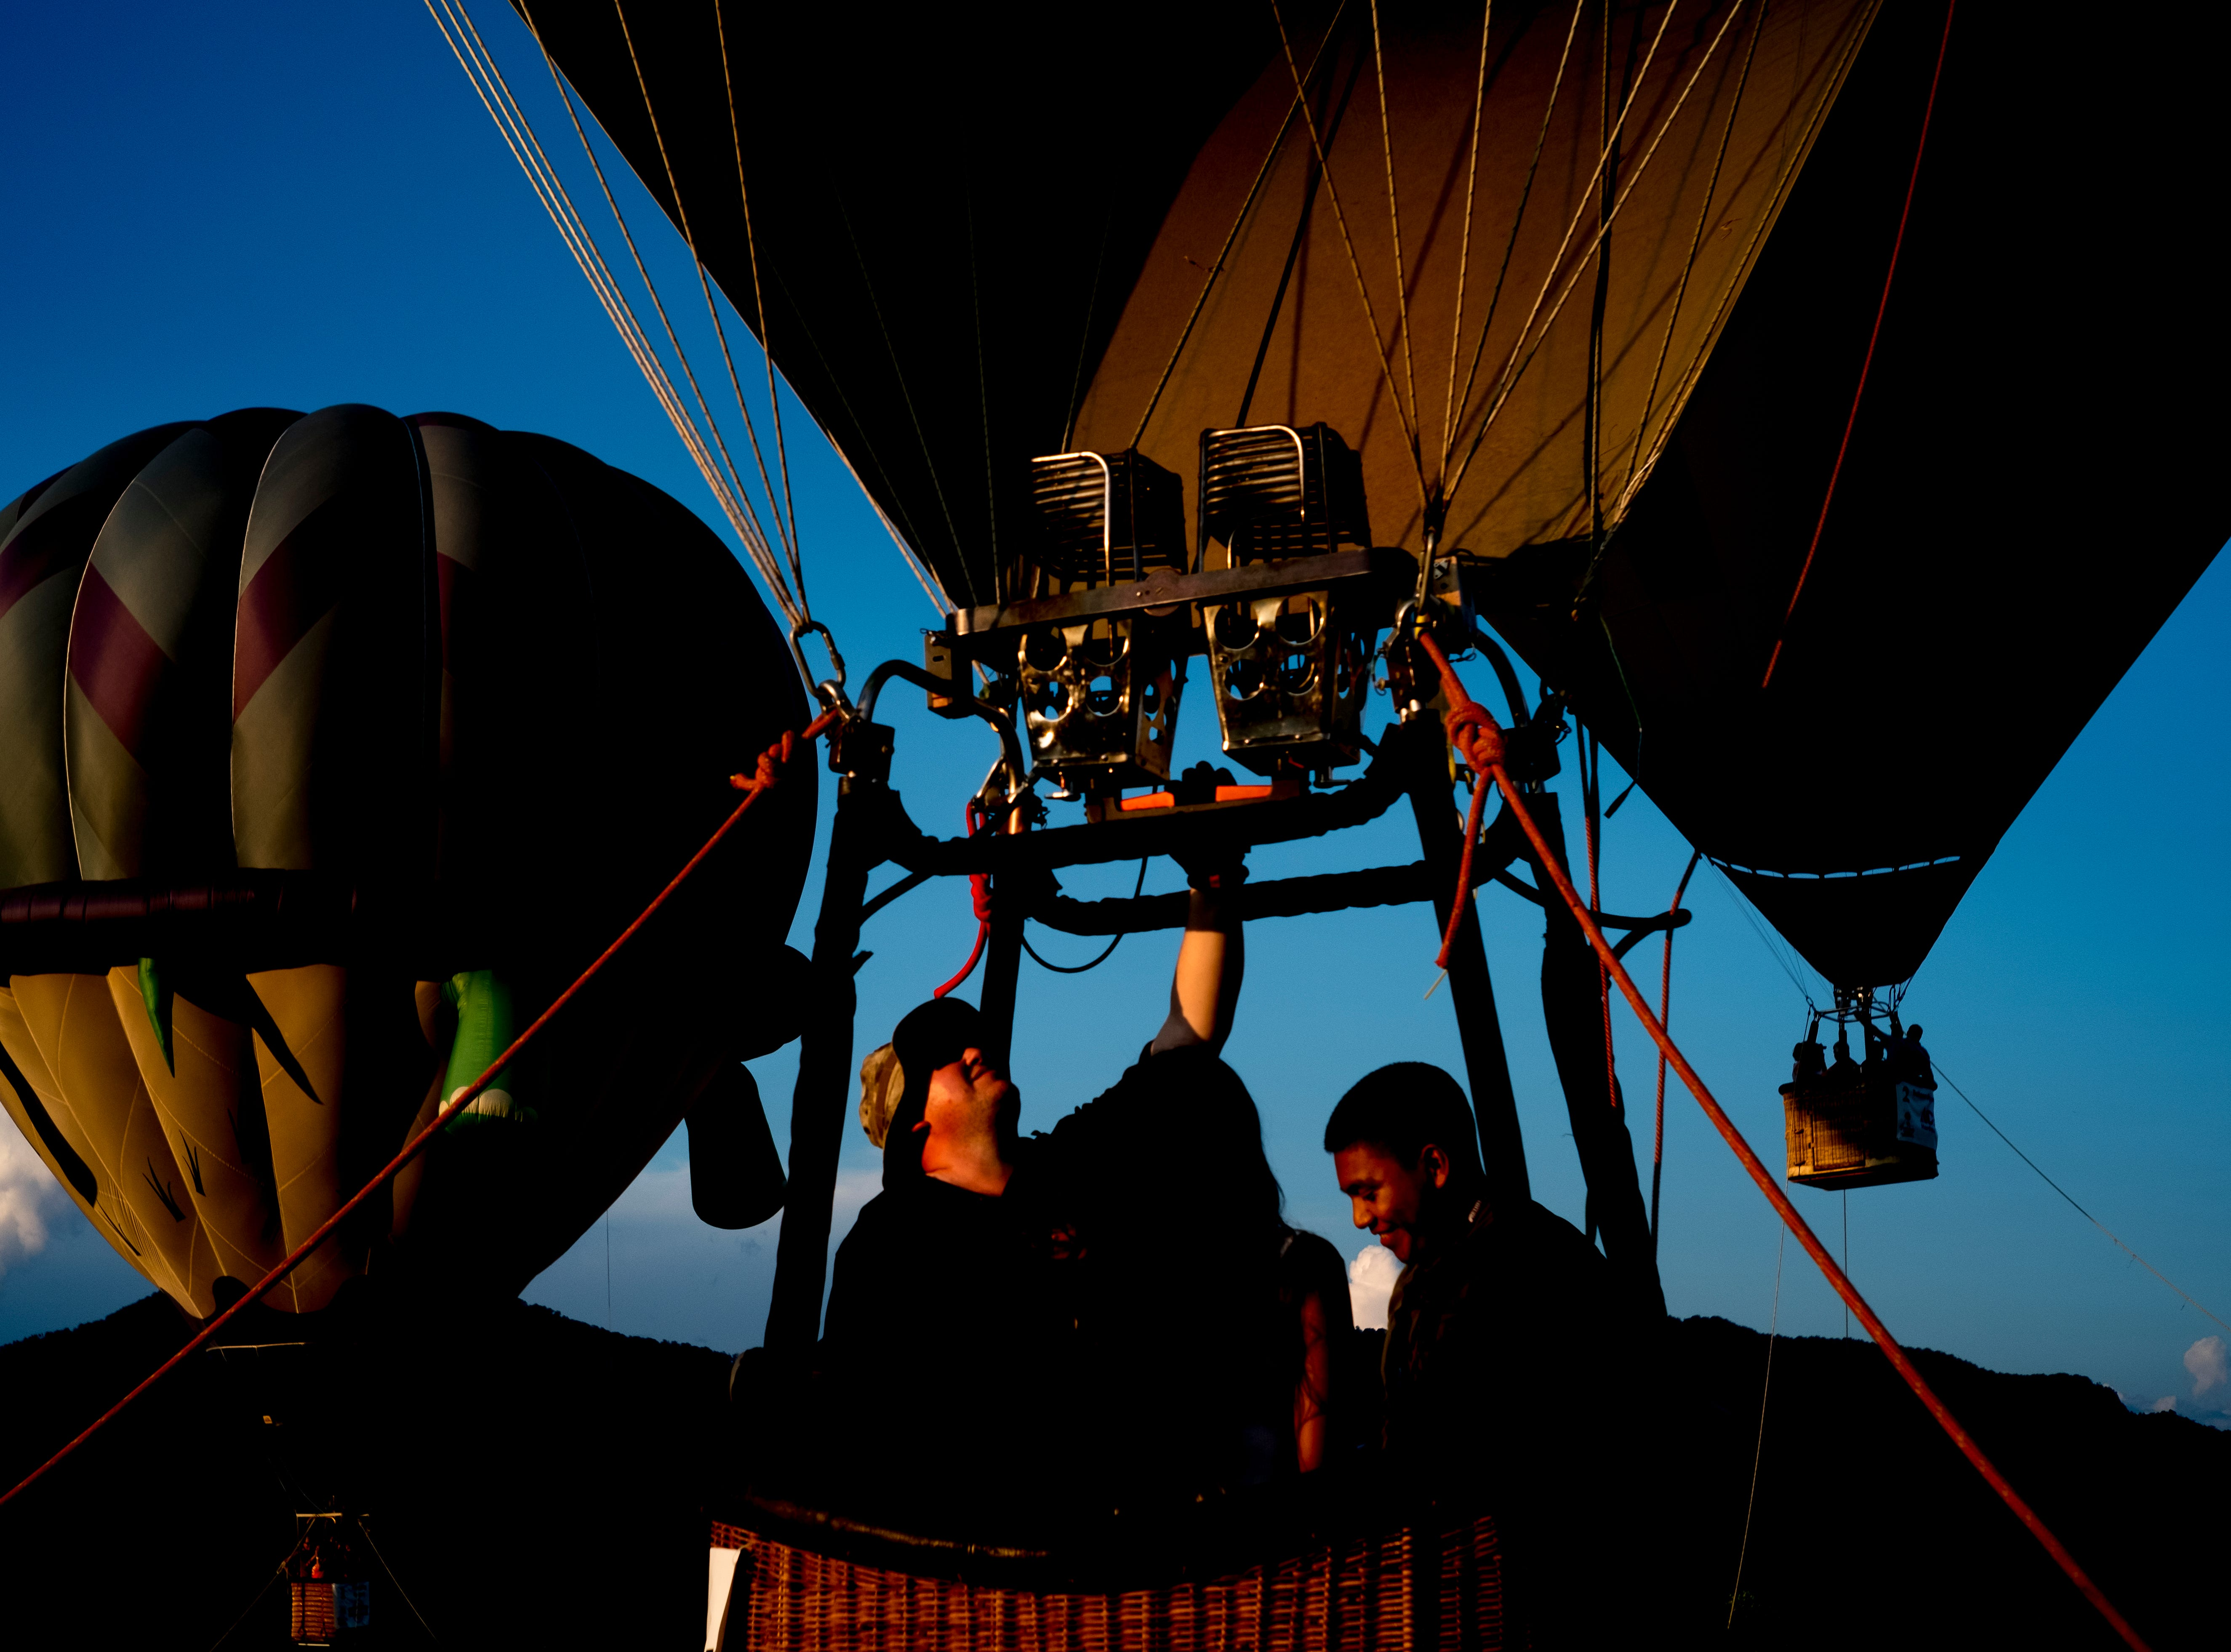 Sean Richardson gives Jamie Velasquez, of Chattanooga, and Erik Lopez a ride in his hot air balloon at the second annual Smoky Mountain Balloon Festival in Townsend, Tennessee on Saturday, August 18, 2018. The festival featured several hot air balloons, food trucks, wine tasting and live entertainment.